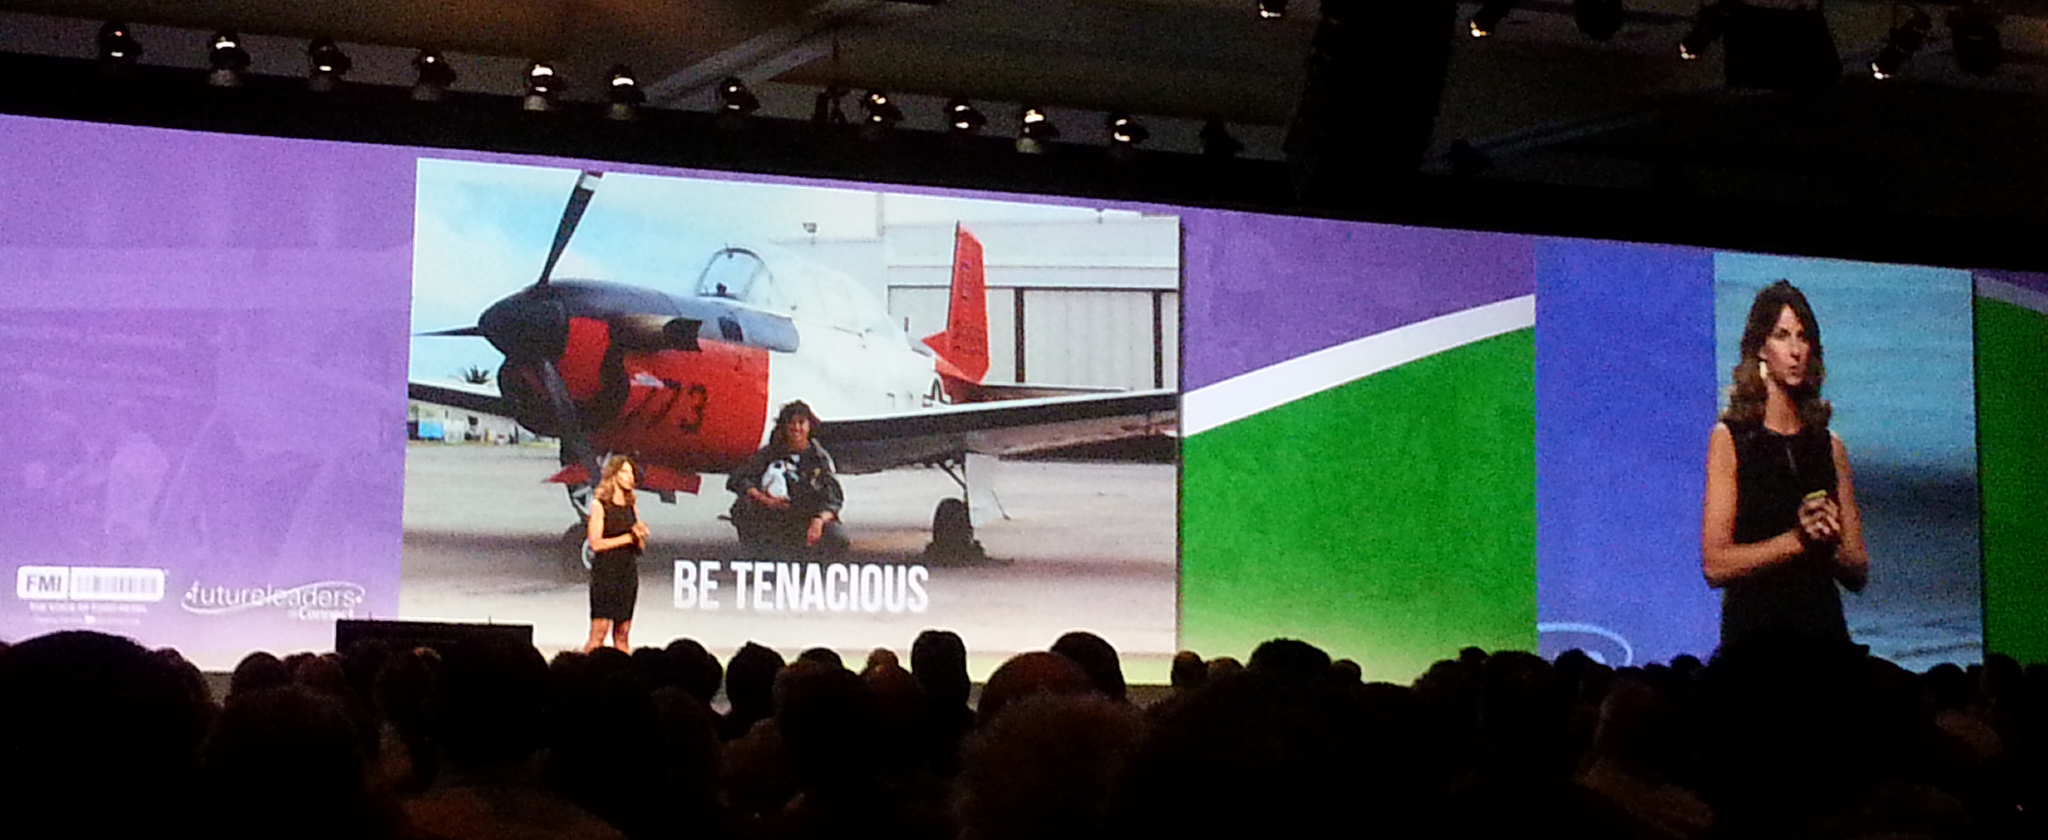 Presenter on stage with slide saying Be Tenacious behind her.